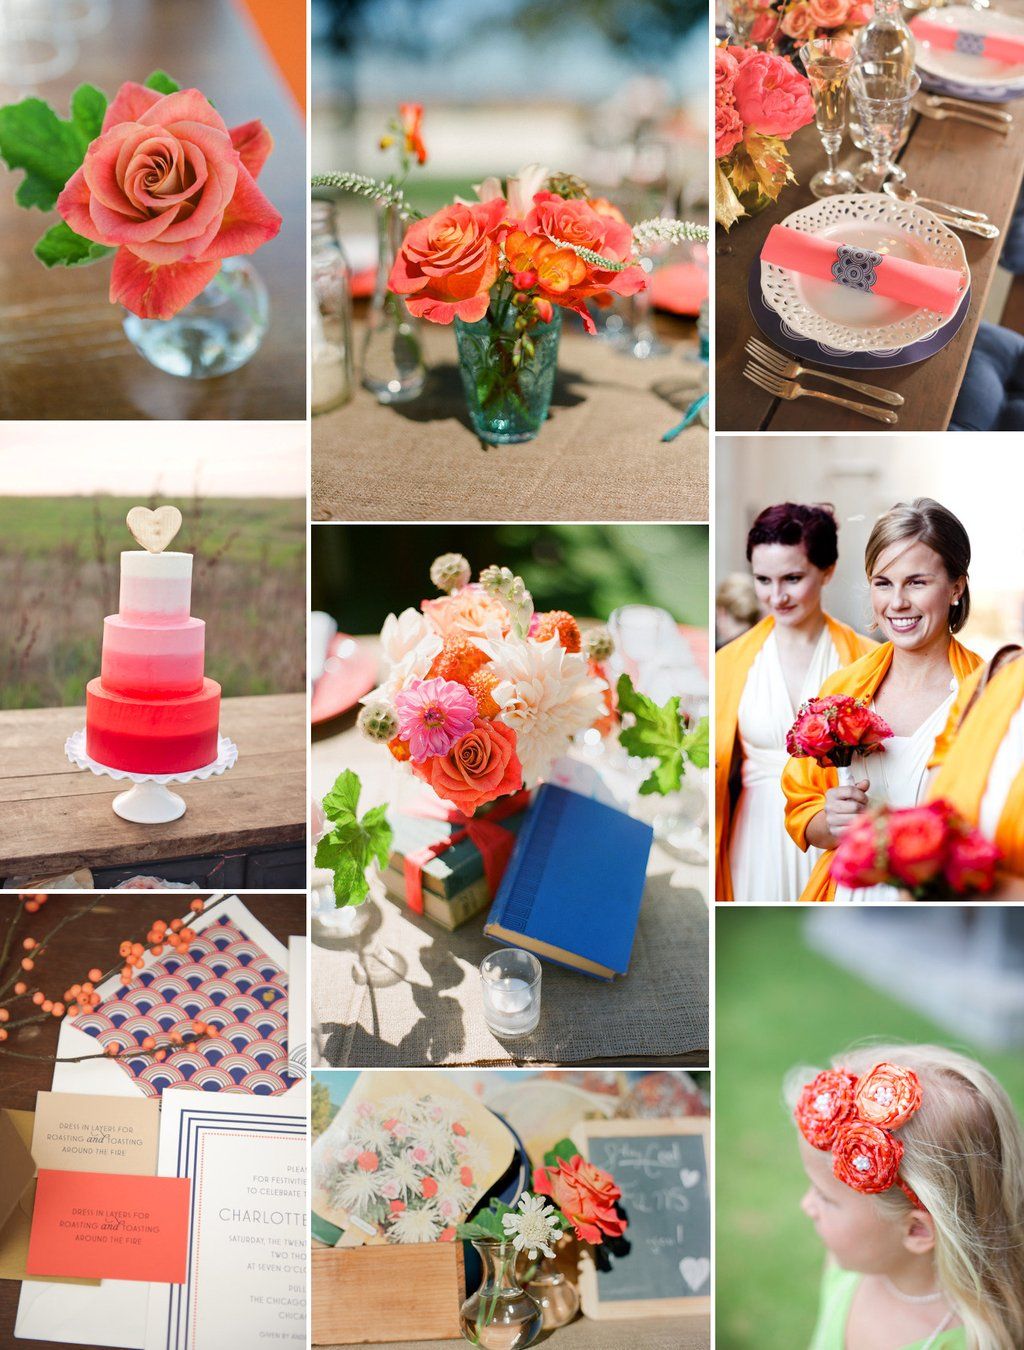 Vivid-coral-wedding-inspiration-ombre-wedding-cake-bright-reception-flowers.full